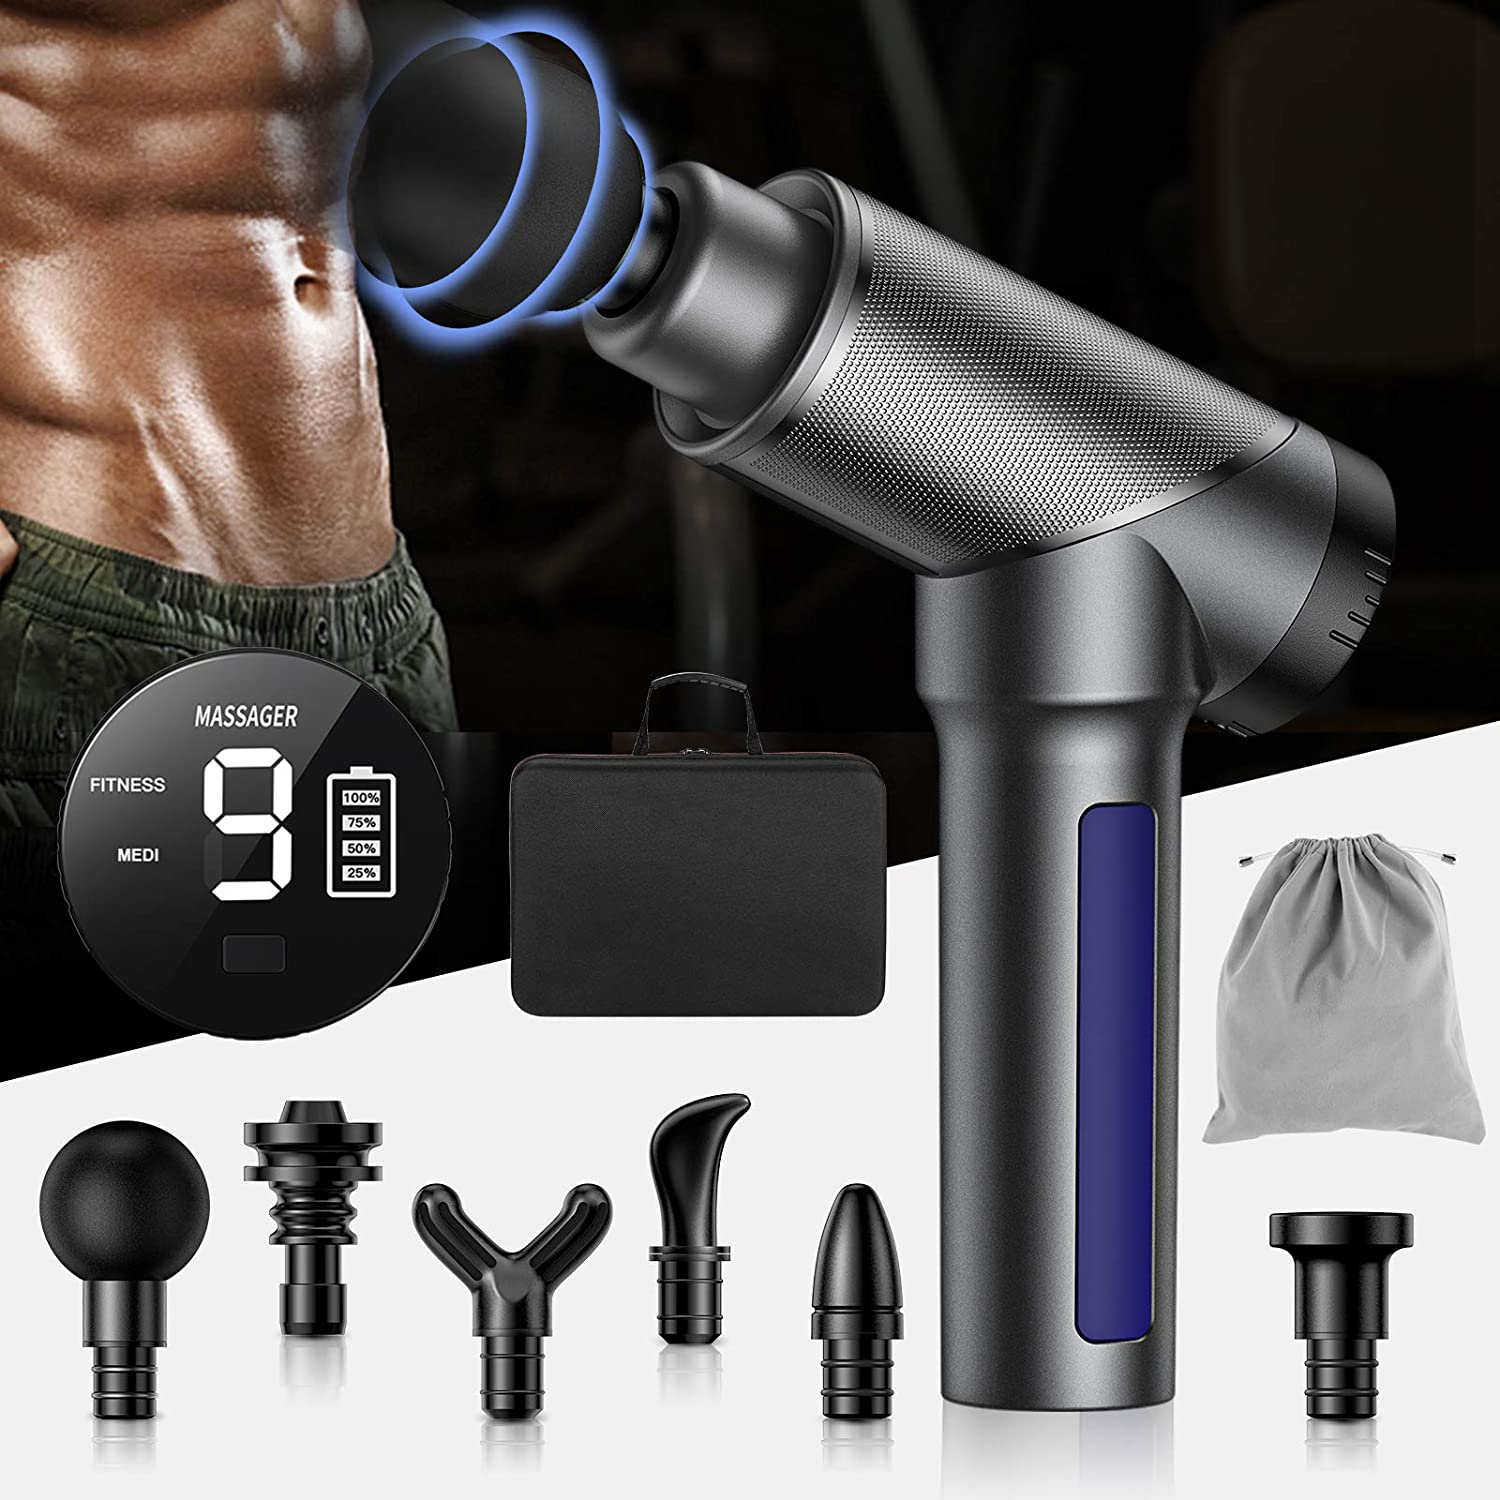 Handheld Muscle Gun Massager for $29.99 Shipped! (Reg.Price $74.98)